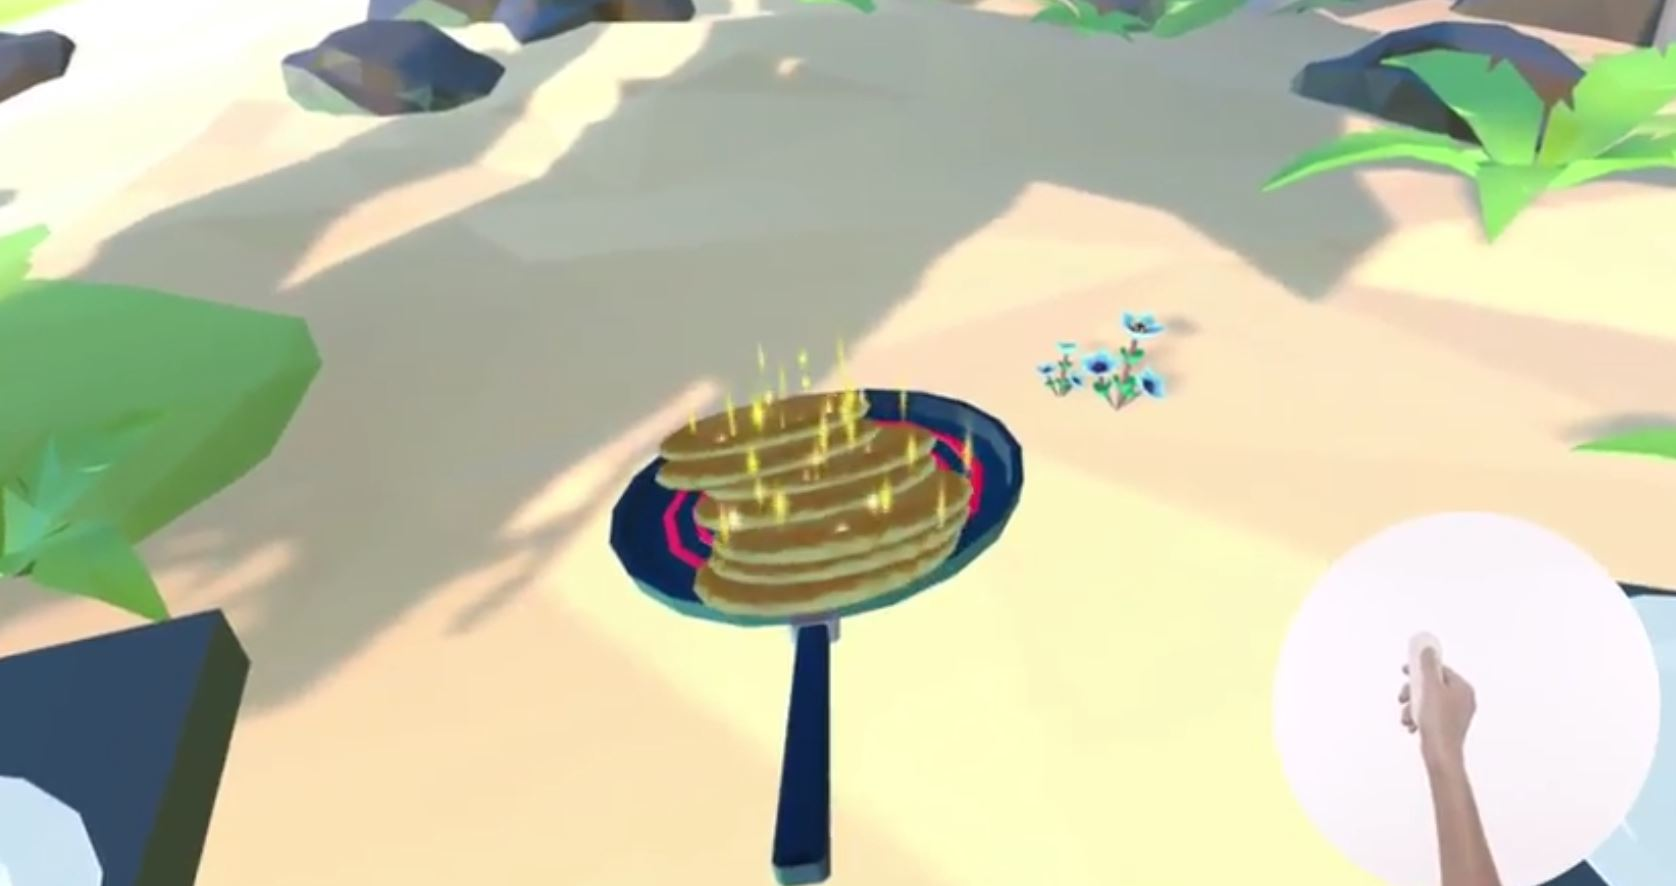 daydream remote pancakes